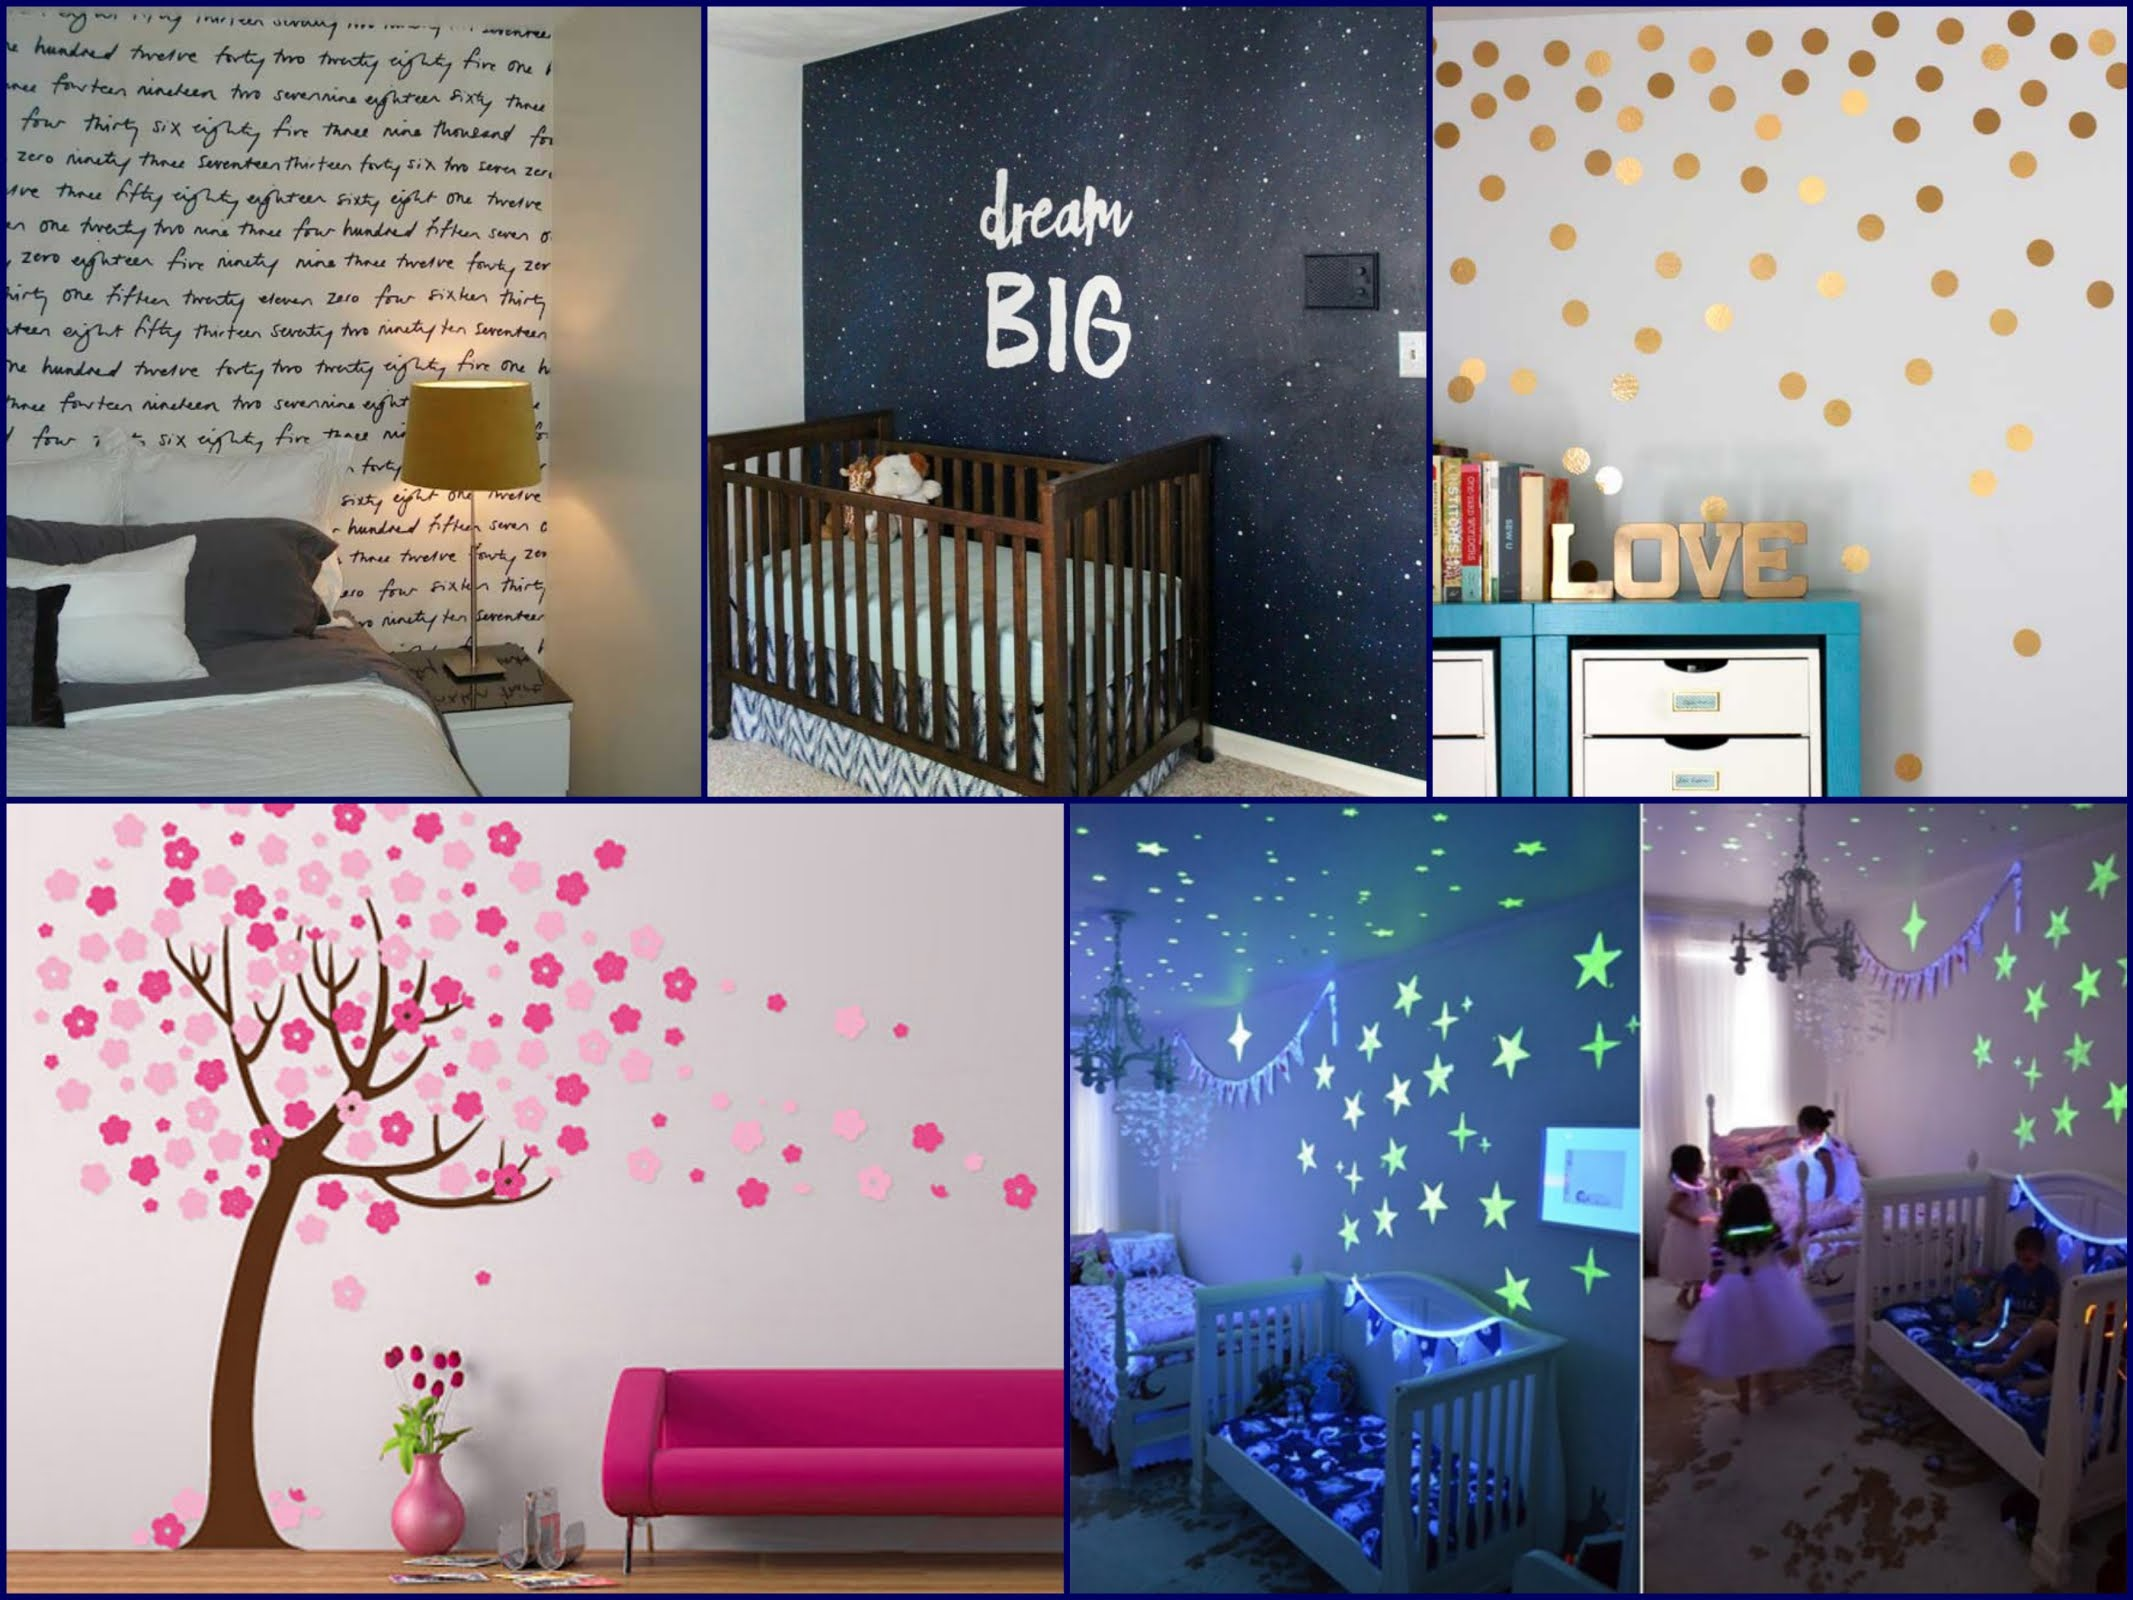 Diy Projects Video Diy Wall Painting Ideas Easy Home Decor Diyall Net Home Of Diy Craft Ideas Inspiration Diy Projects Craft Ideas How To S For Home Decor